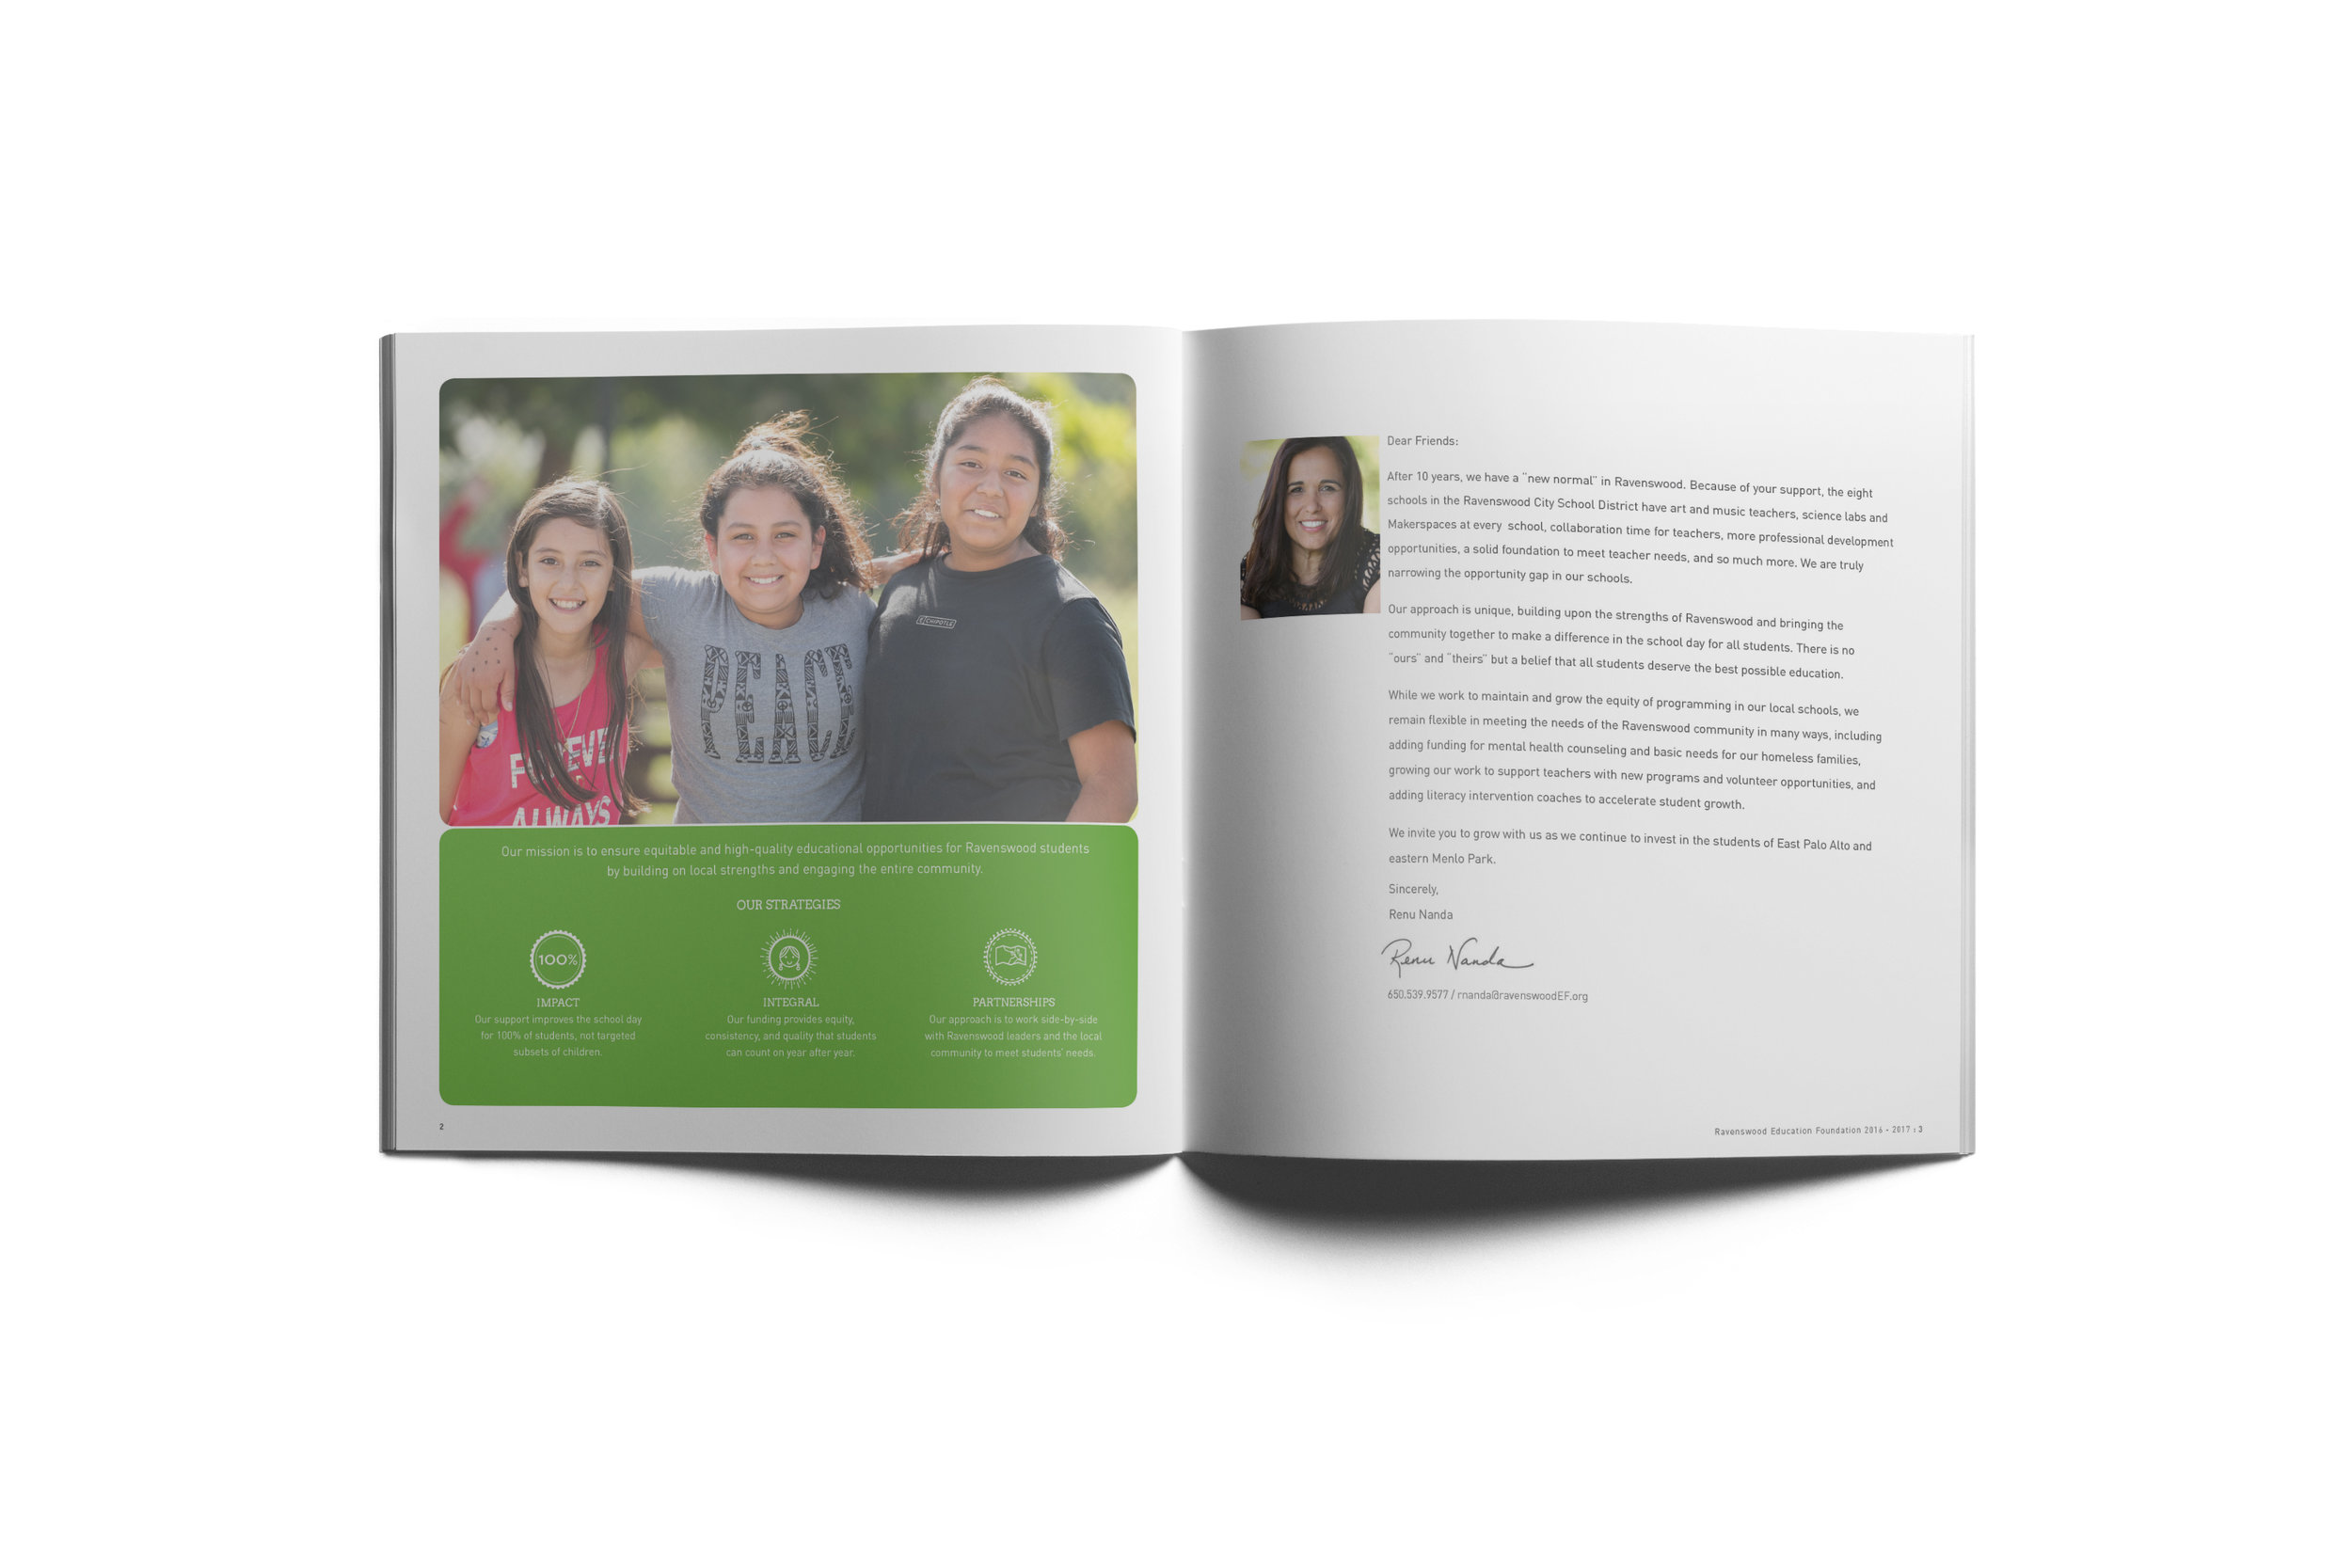 ravenswood education foundation_0005s_0005_annual report 2-3.jpg